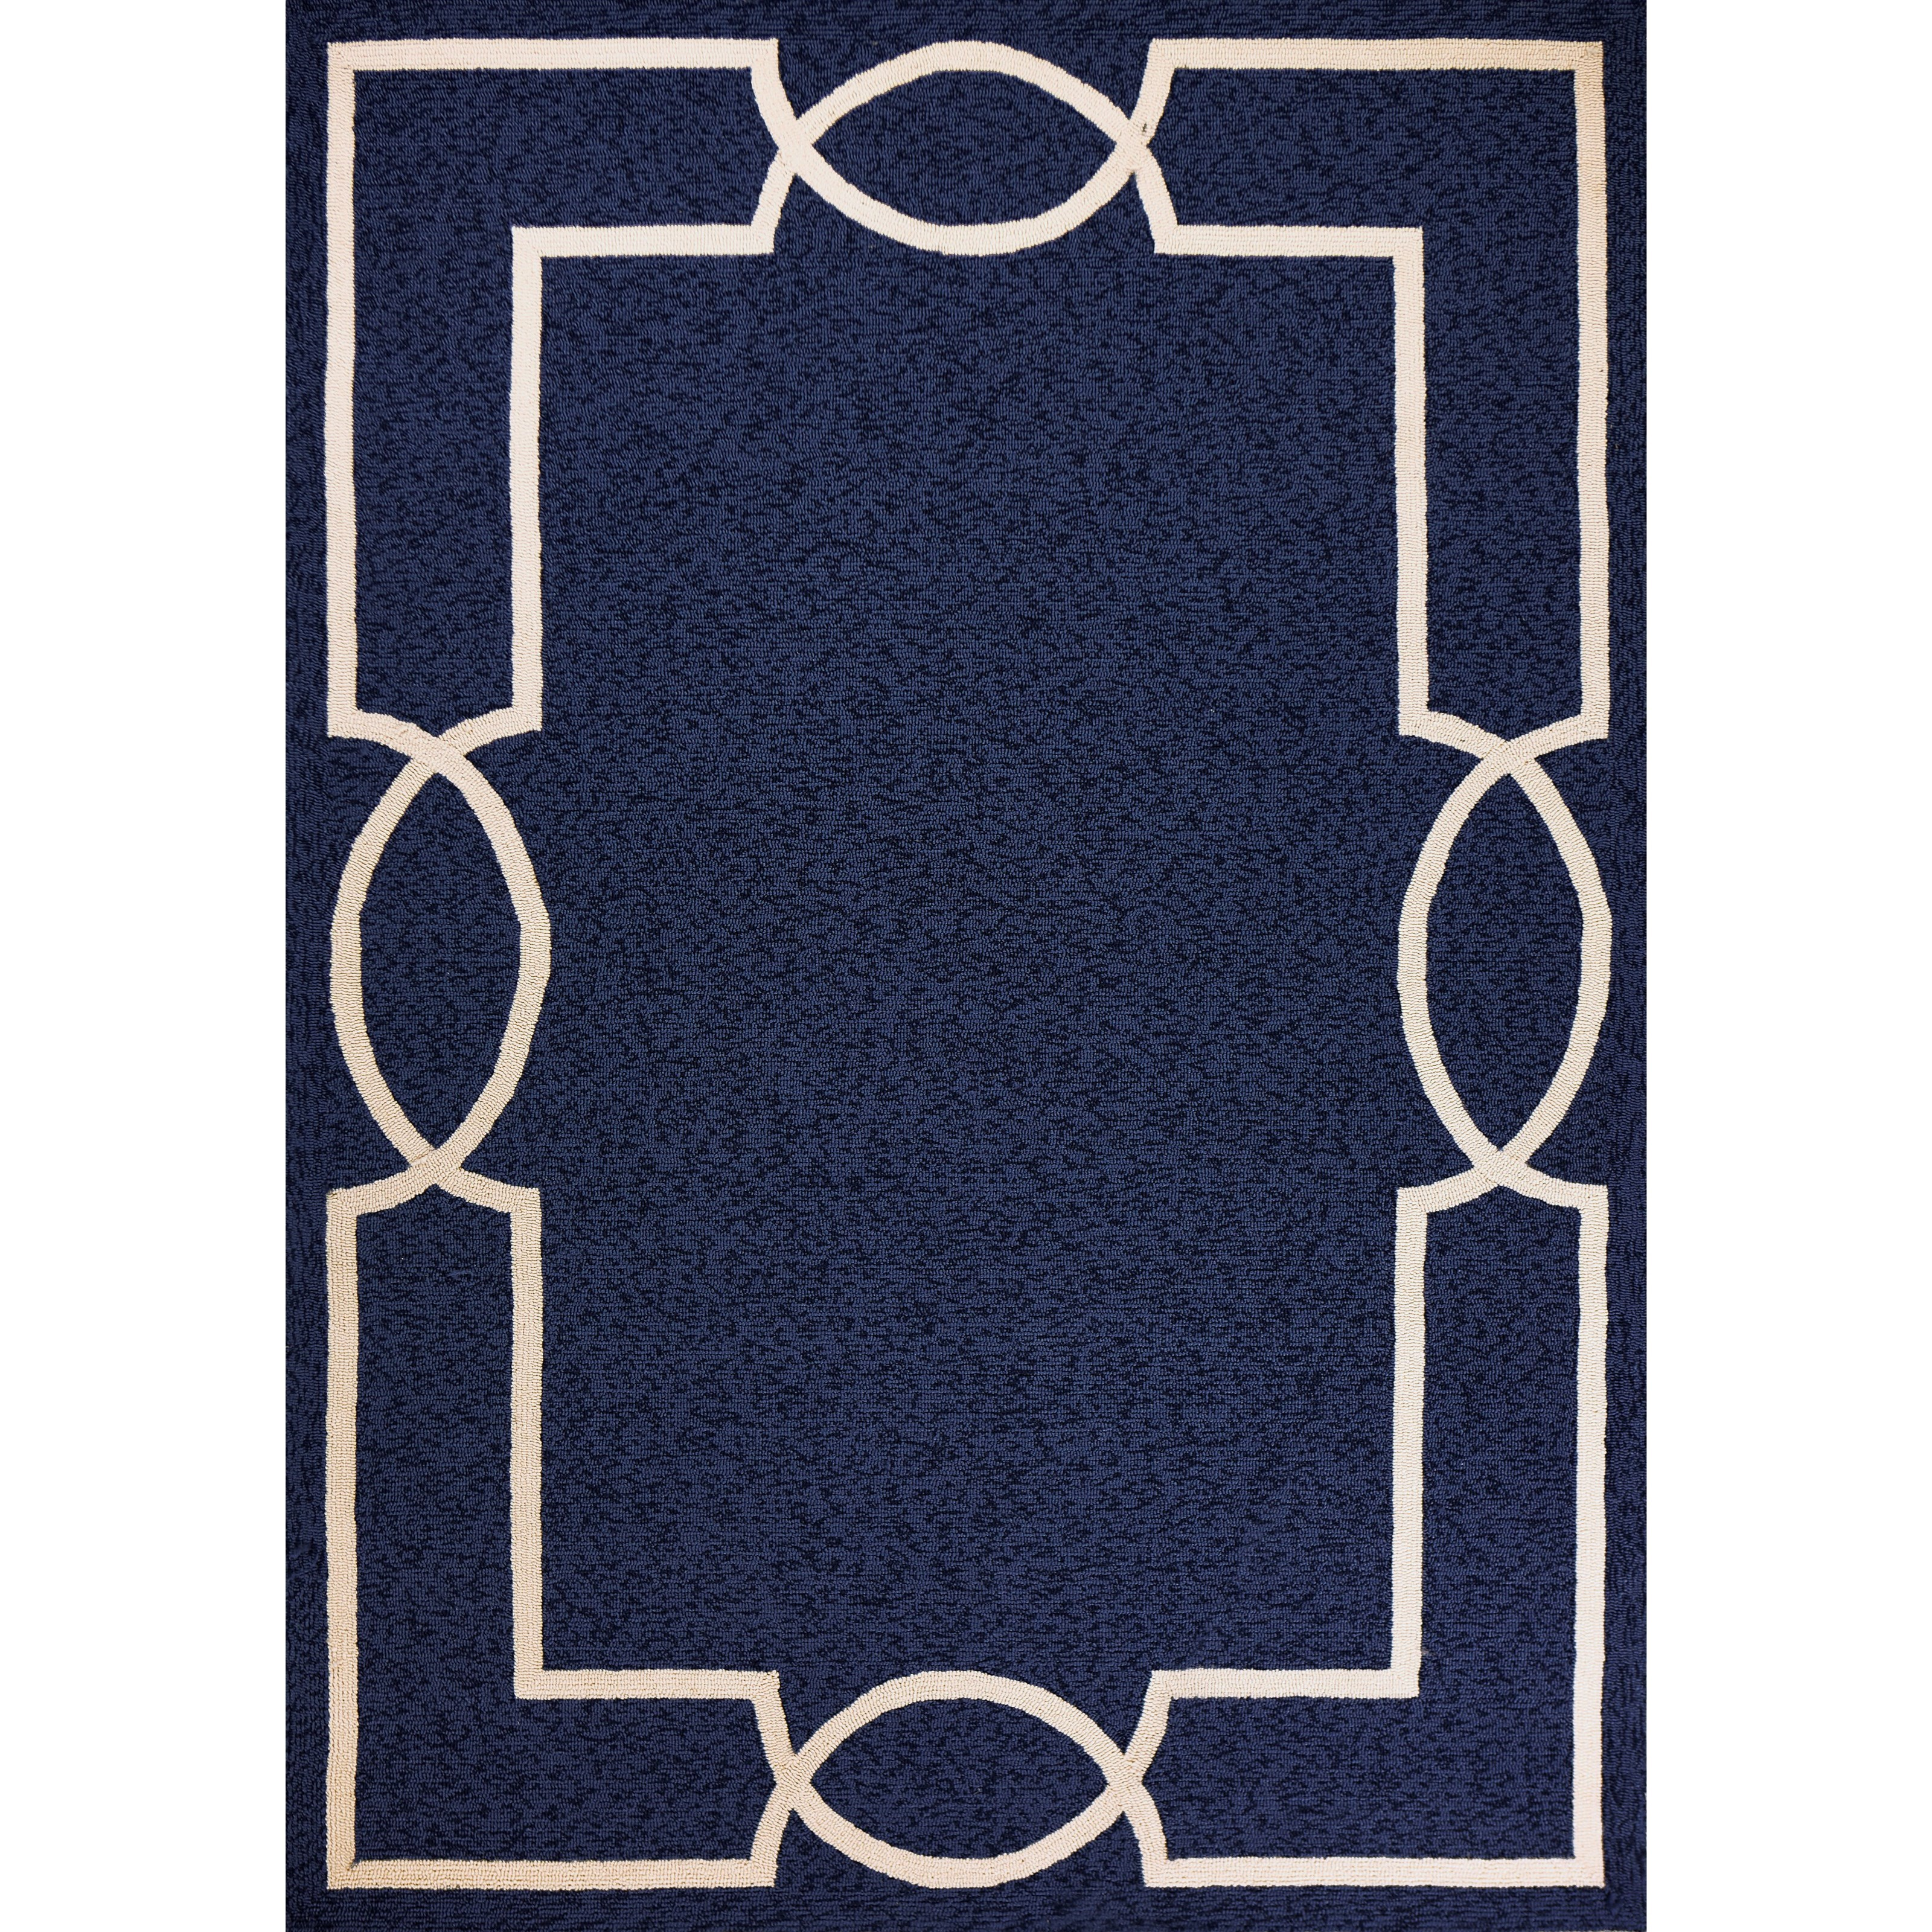 Libby Langdon Hamptons 11' X 8' Area Rug by Kas at Darvin Furniture